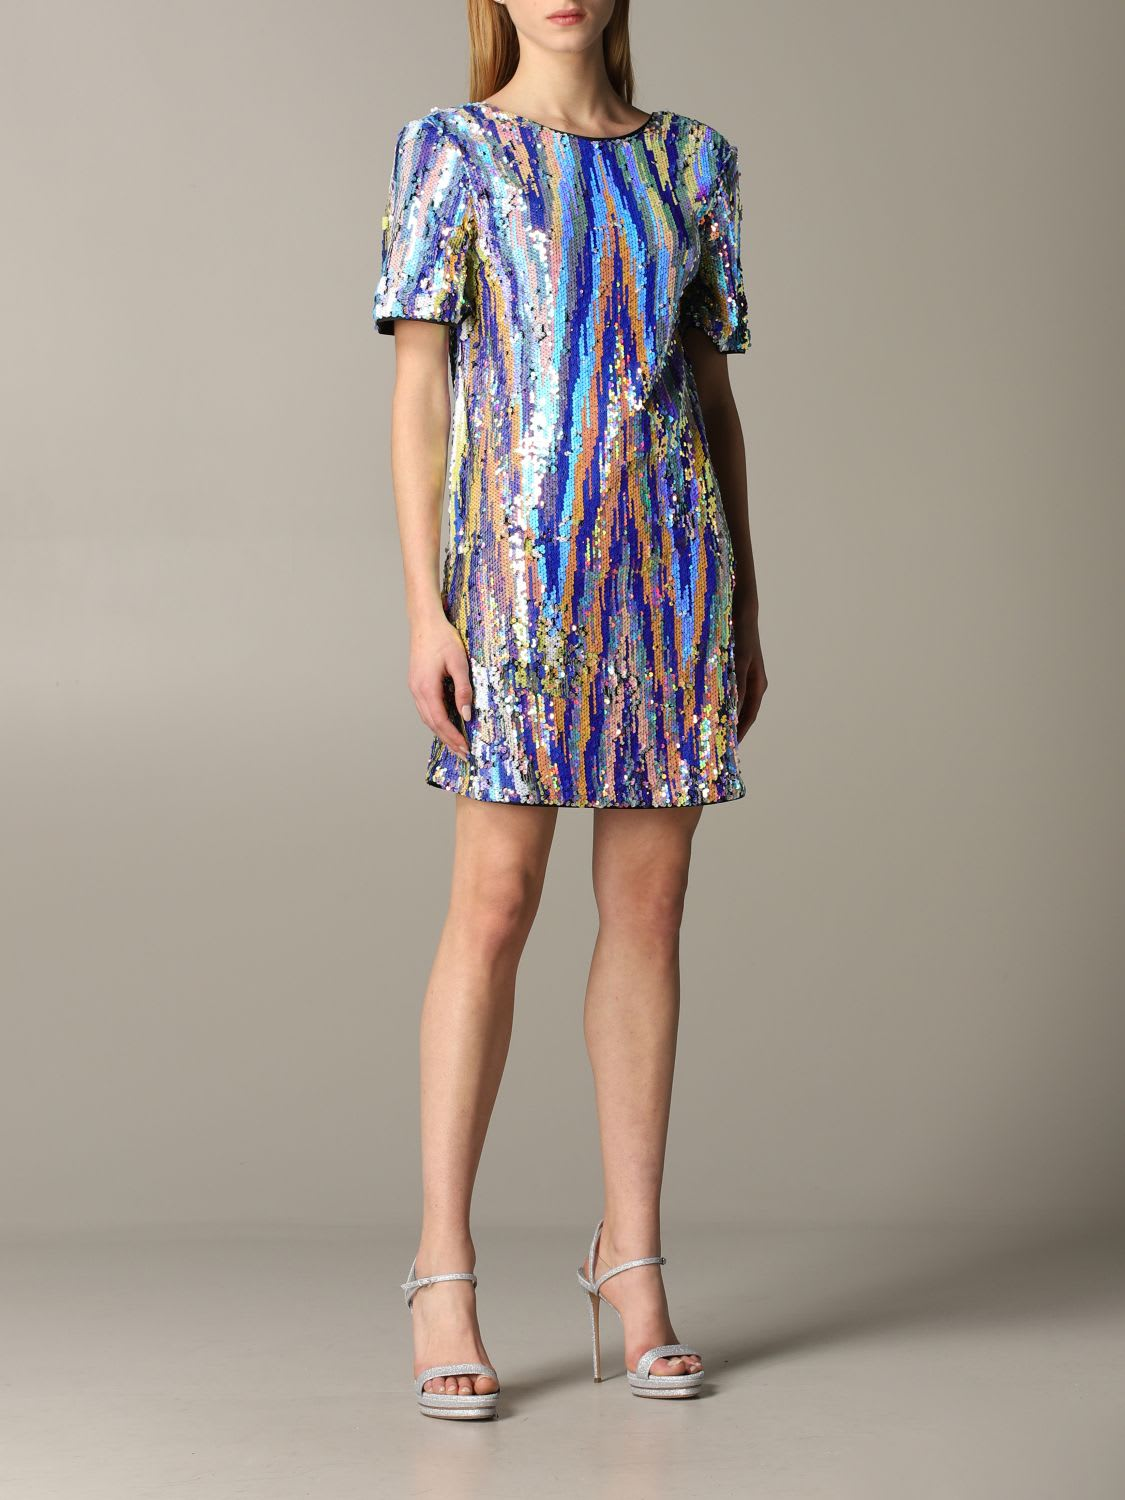 Buy Armani Exchange Dress Armani Exchange Sequined Dress online, shop Armani Collezioni with free shipping